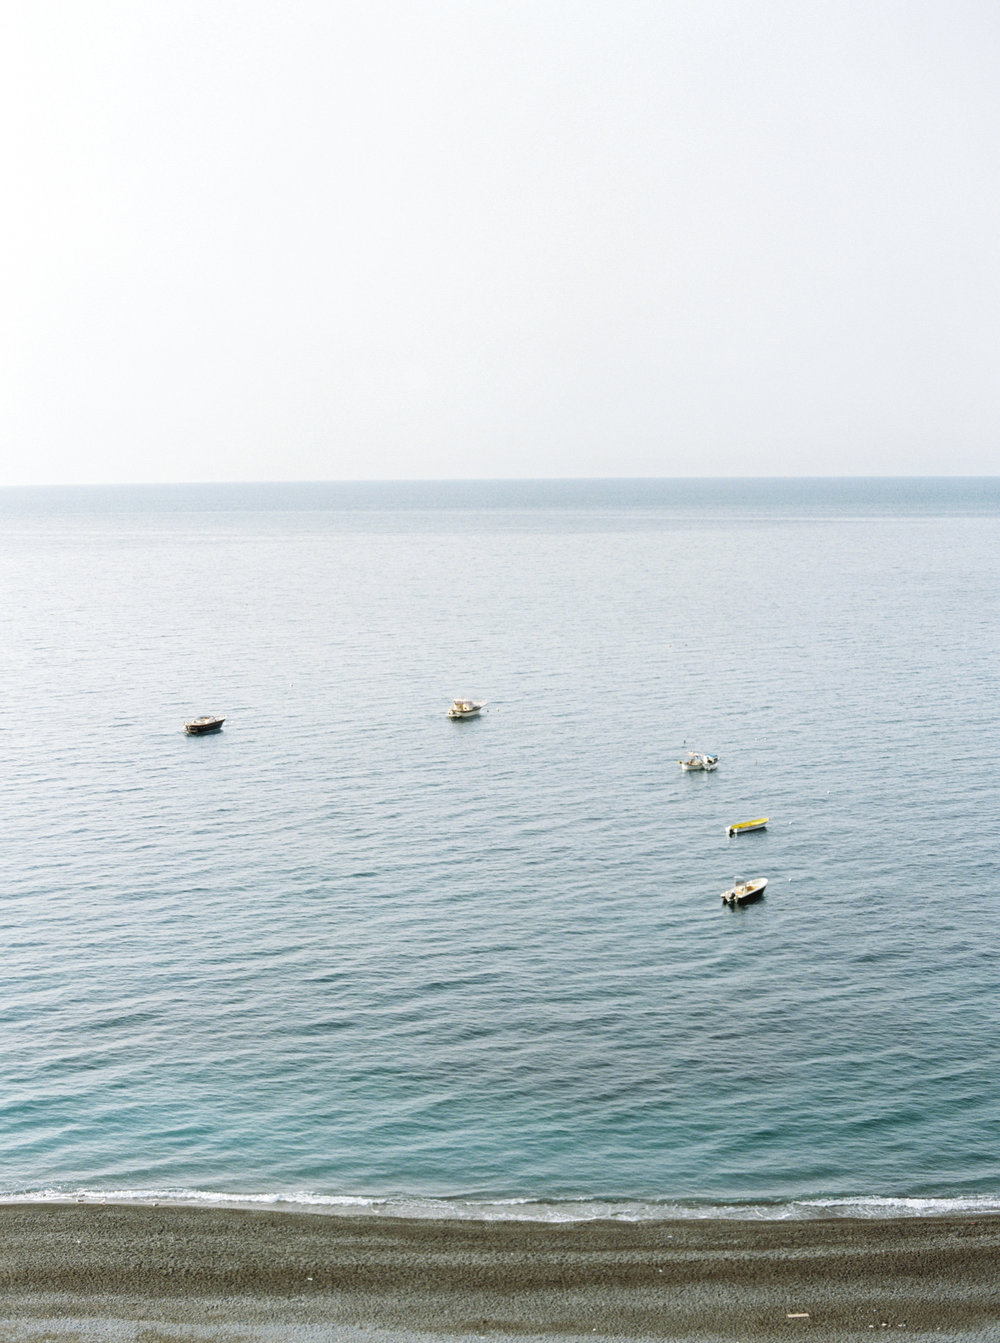 Boats off the Amalfi Coast, Positano to be exact. See more now on Cottage Hill